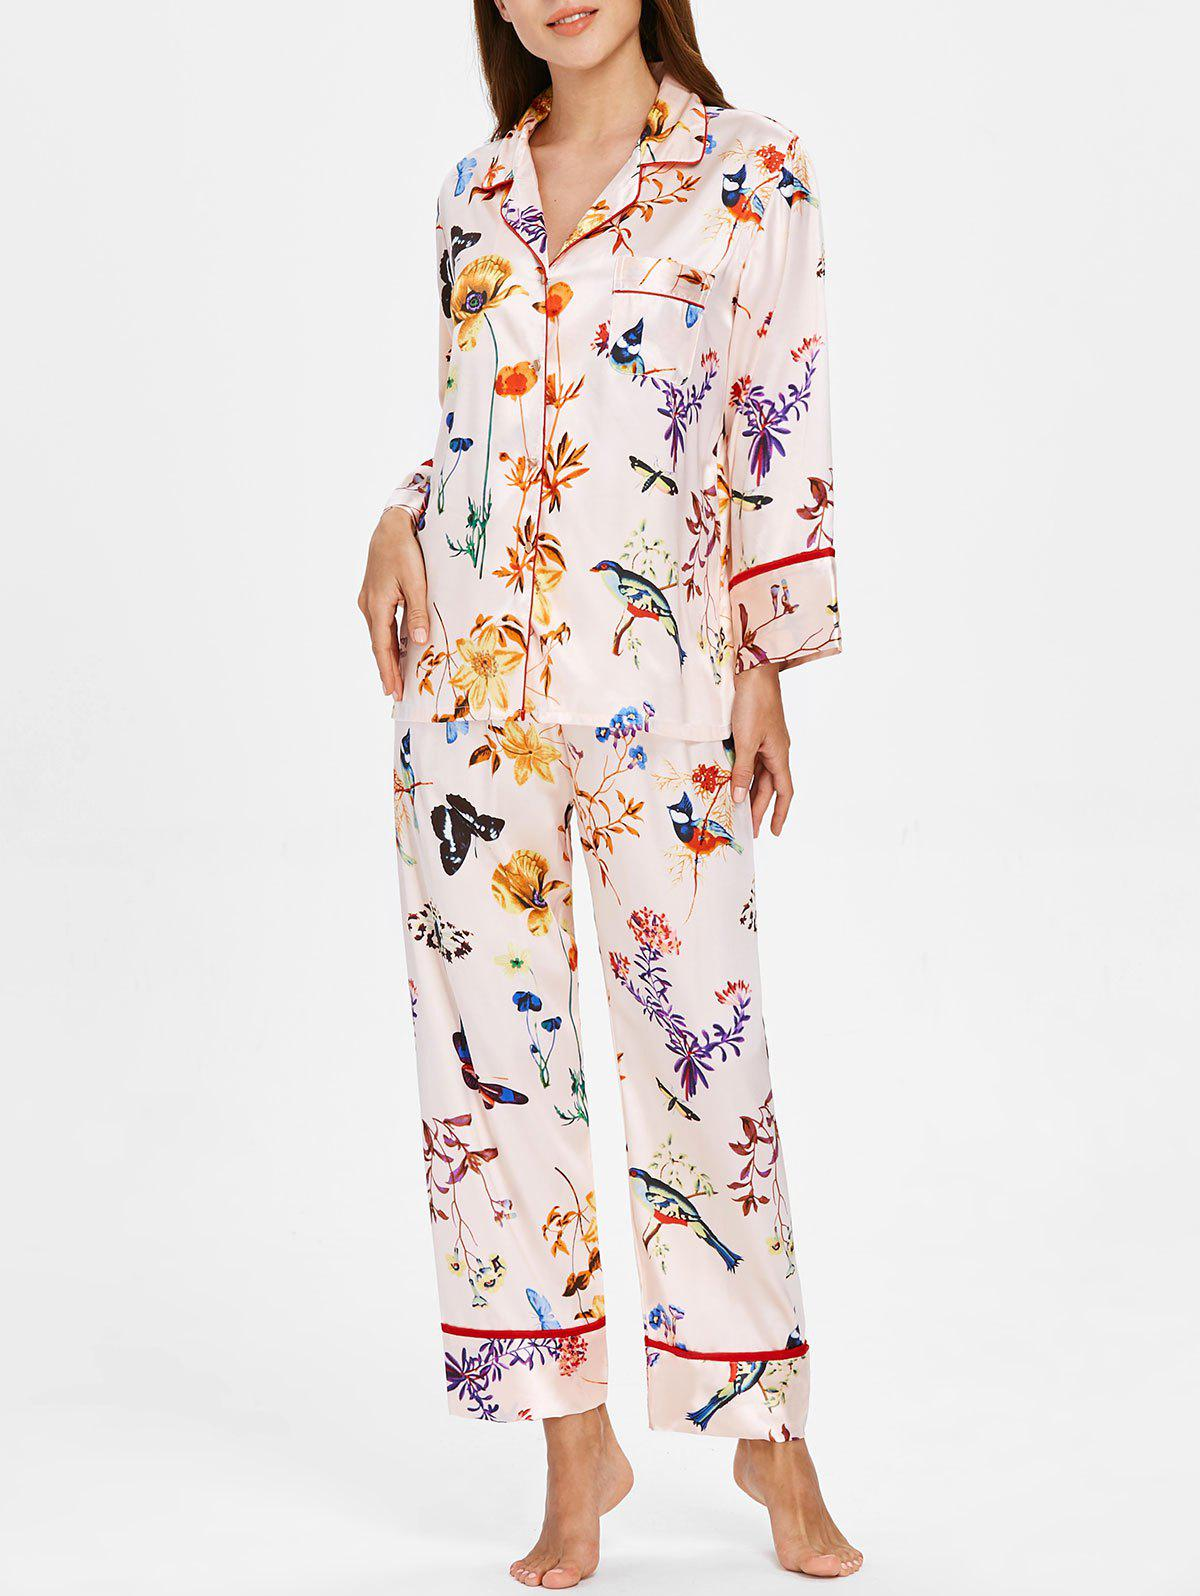 Discount Flower Butterfly Printed Satin Nightgown Set